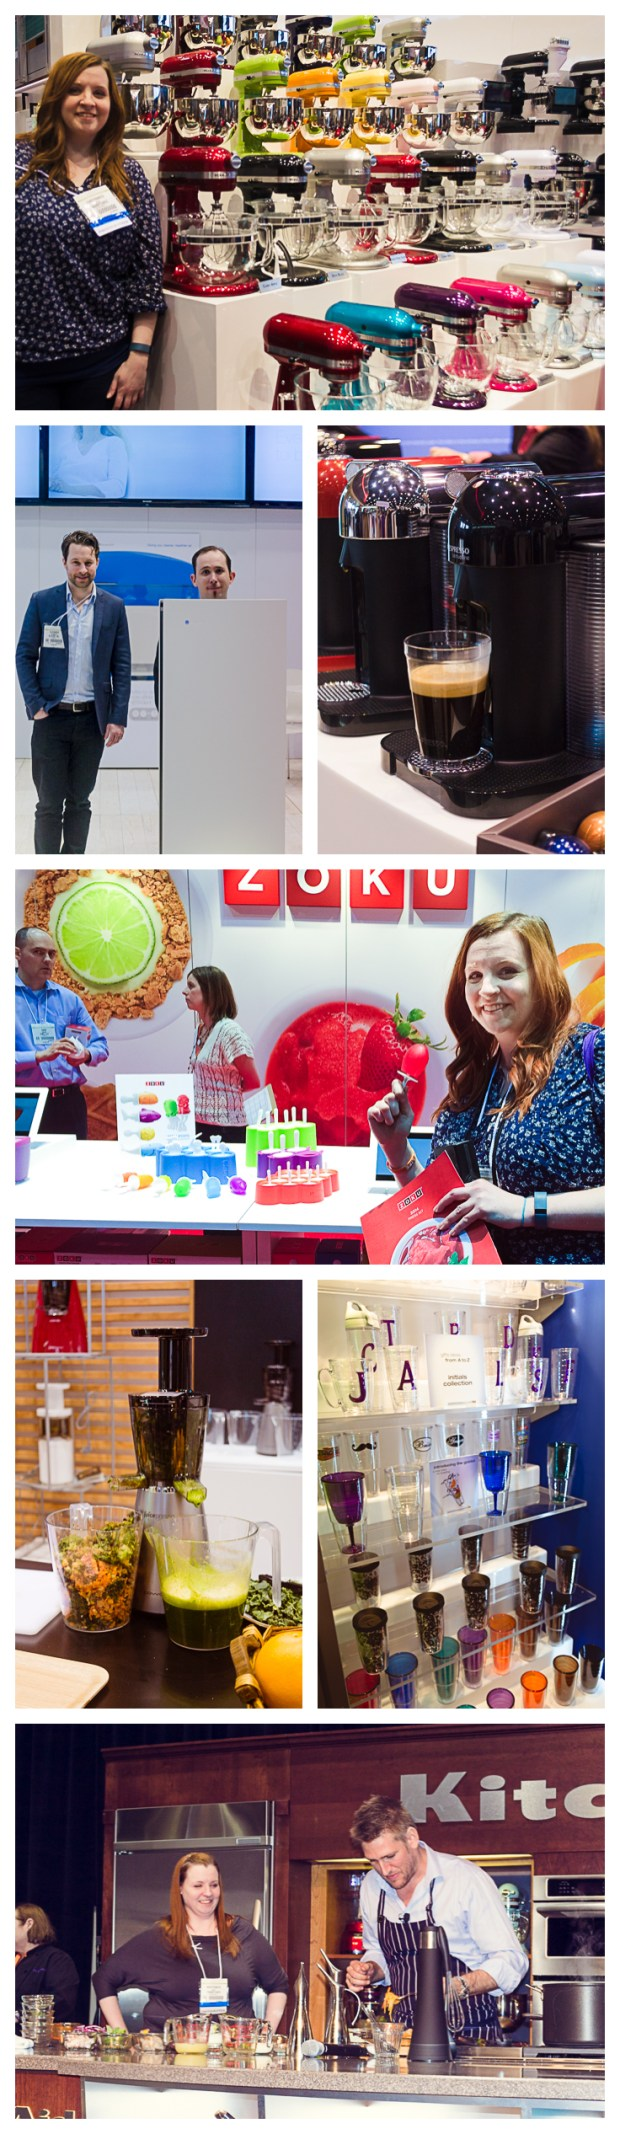 Highlights from the International Home & Housewares Show 2014